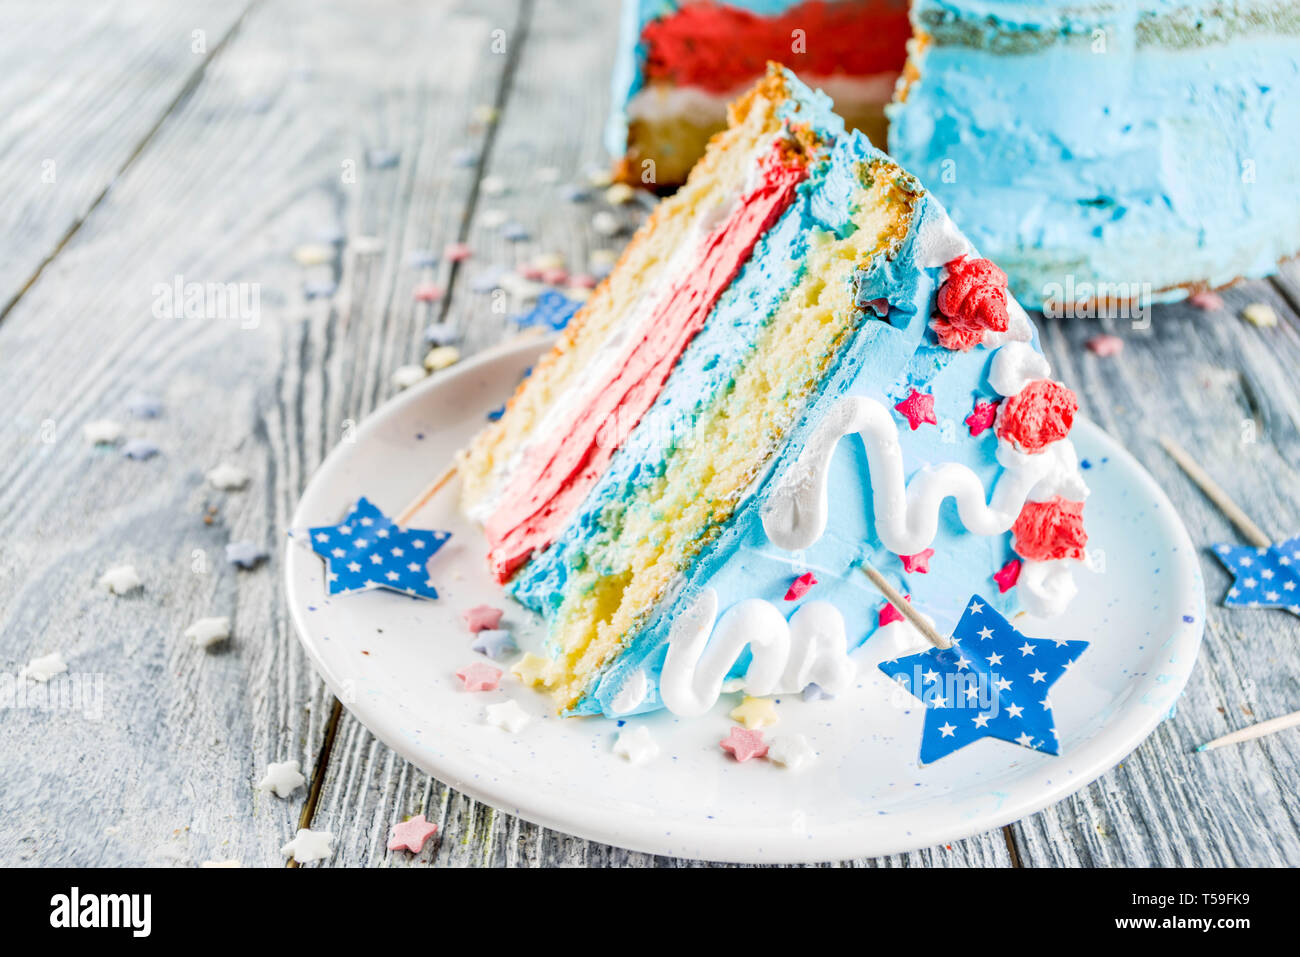 Homemade American United States Independence Day Cake For 4 July